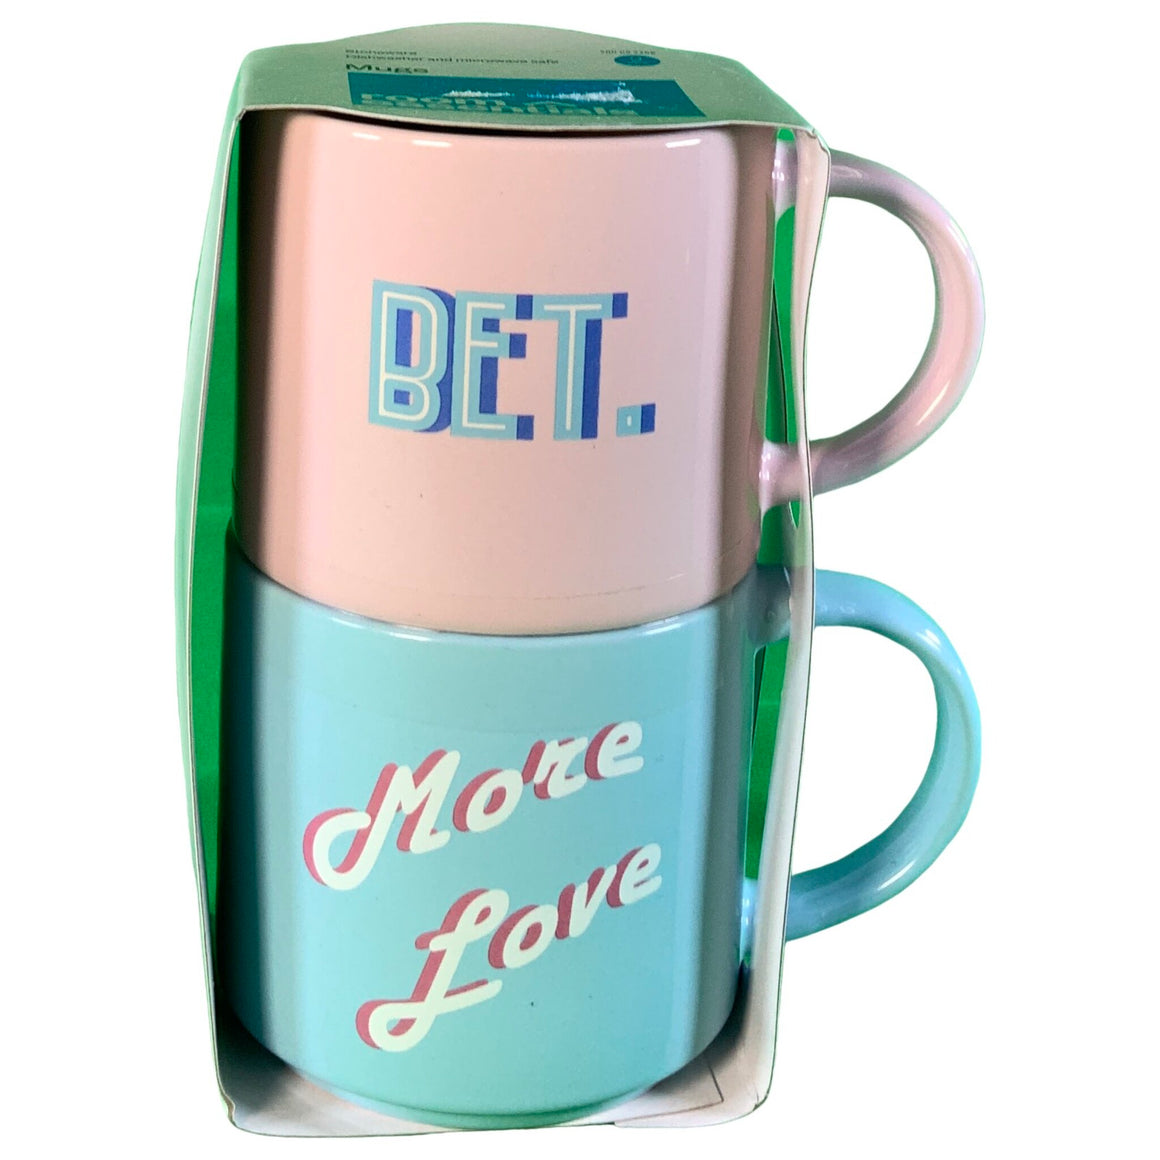 15Oz 2Pk Stoneware Bet And More Love Mugs Pink/Blue - Room Essentials™